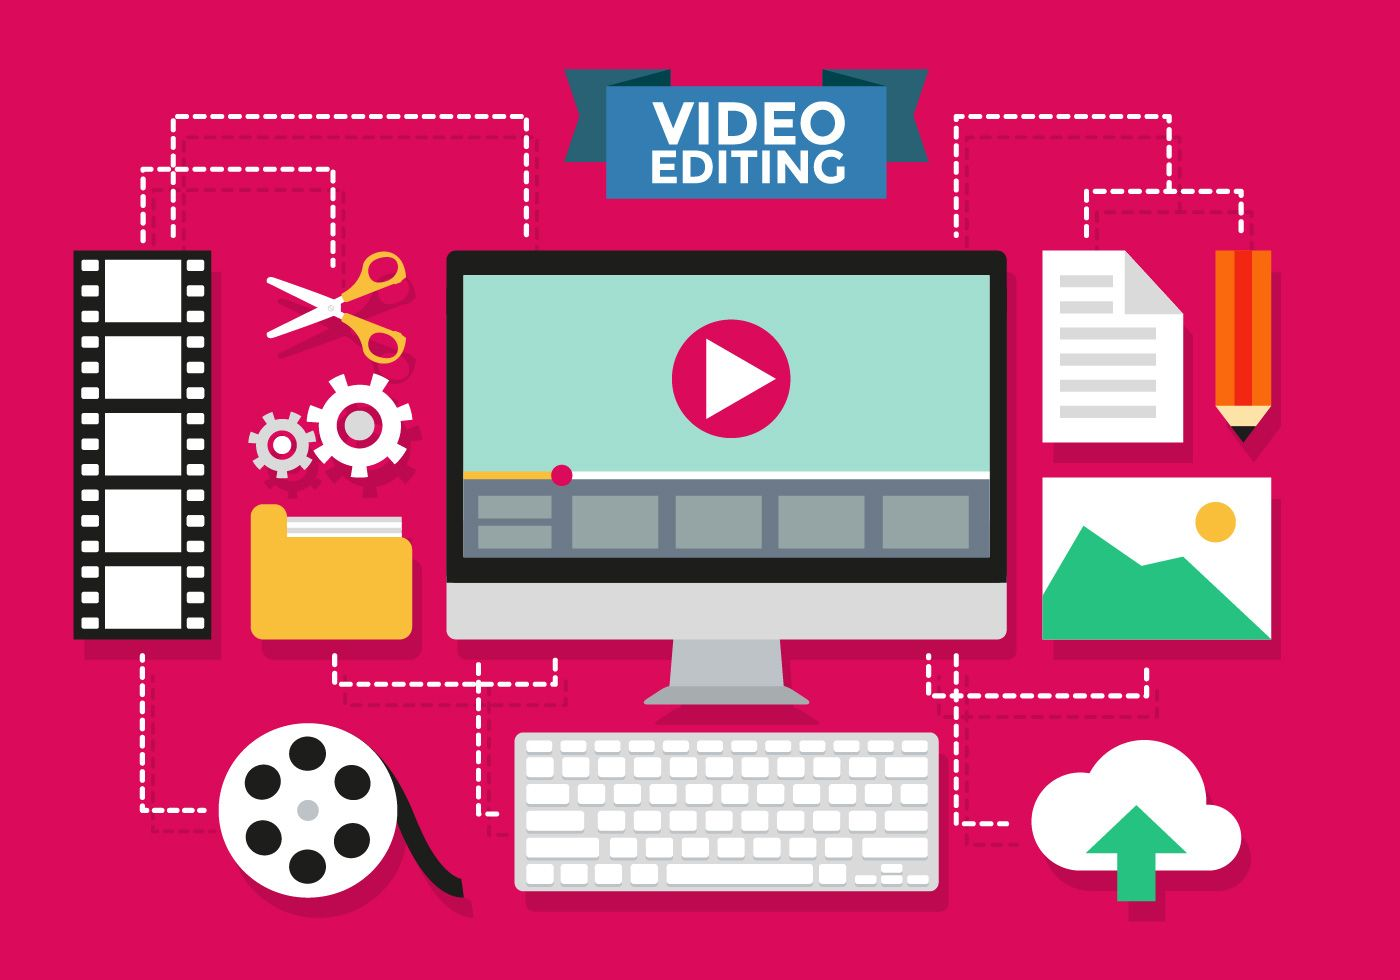 Video Editing Infographic Vector Template Video editing